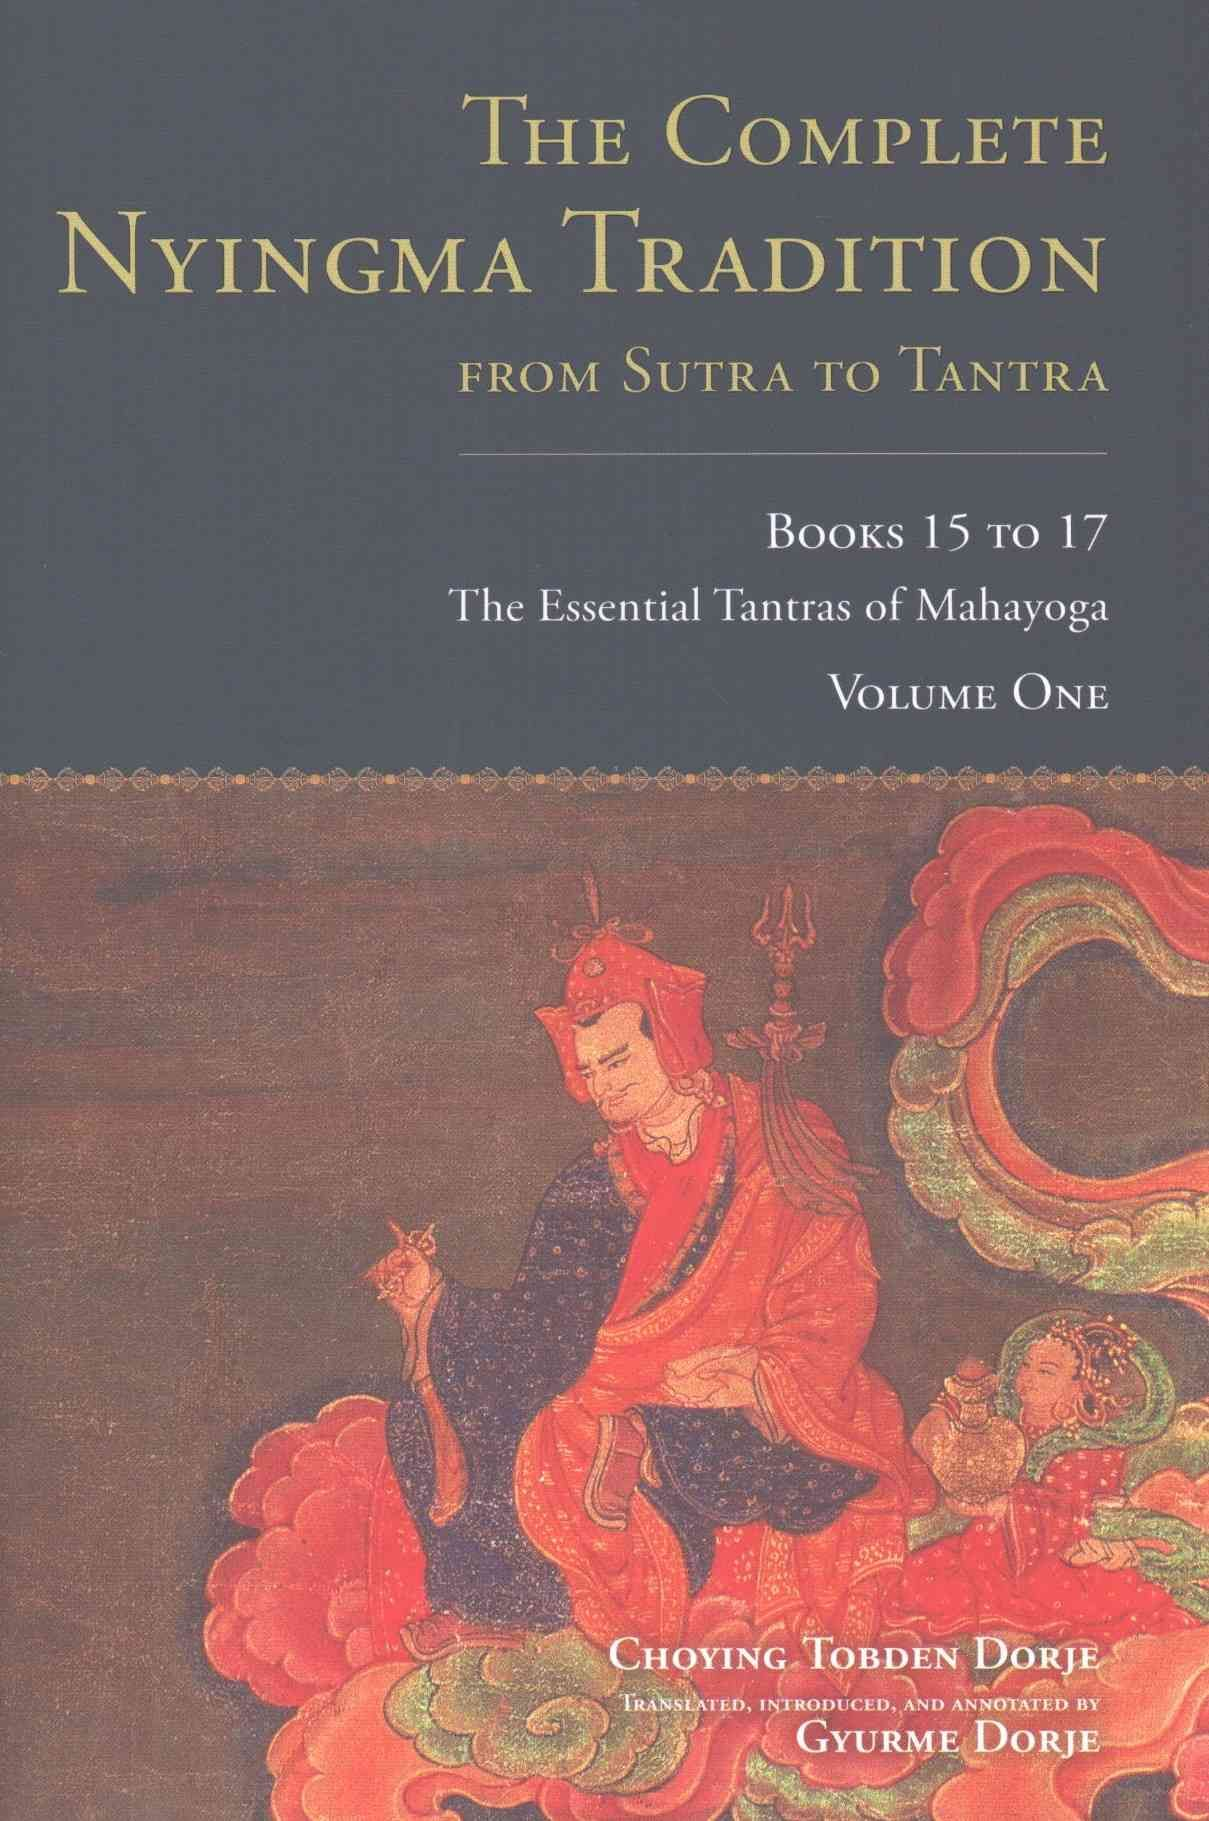 Libros De Tantra The Complete Nyingma Tradition From Sutra To Tantra Books 15 To